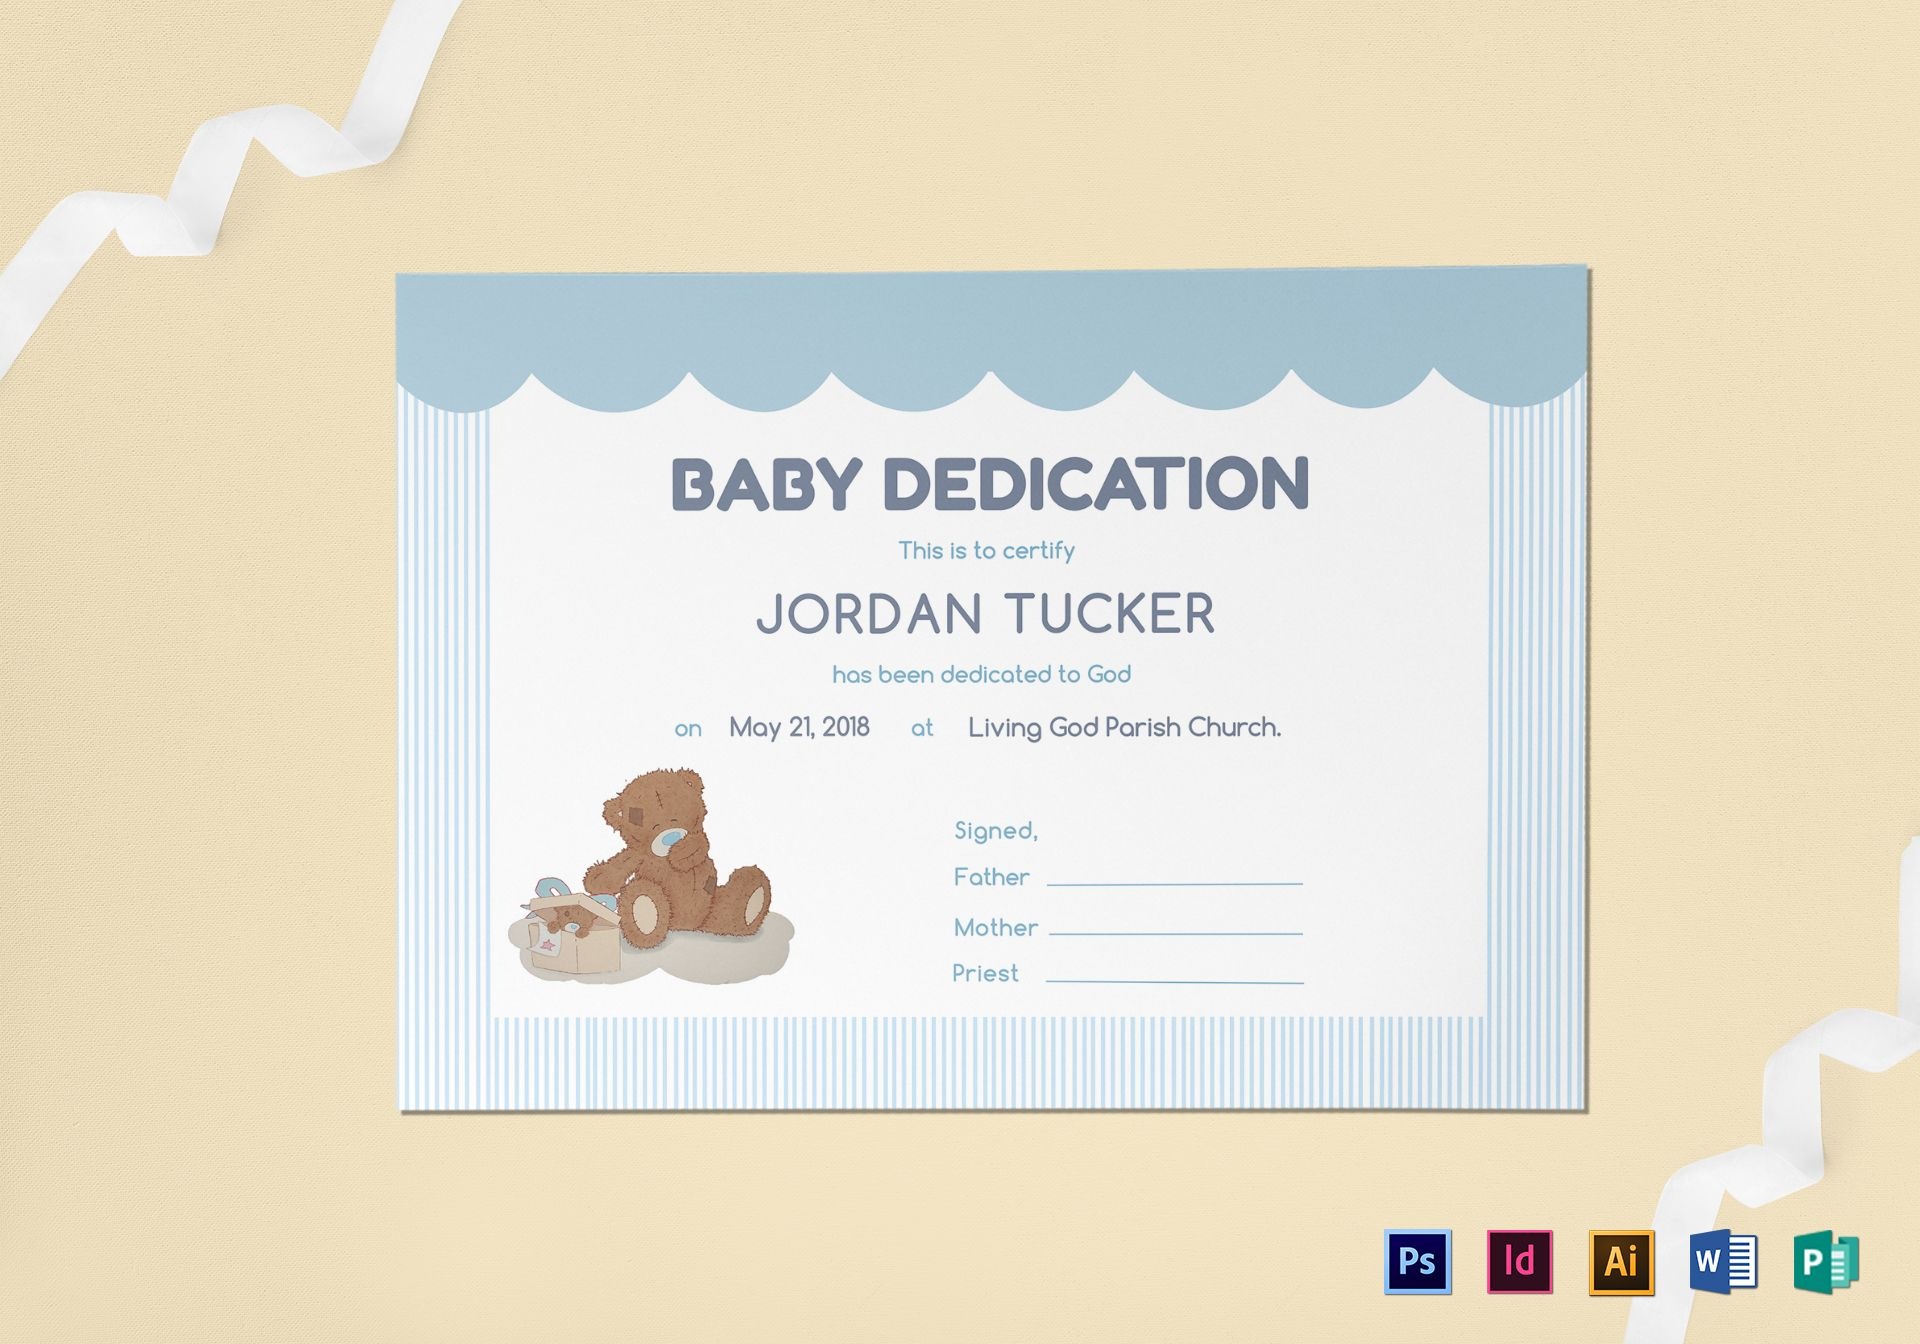 Baby Dedication Certificate Template With Baby Dedication Certificate Template